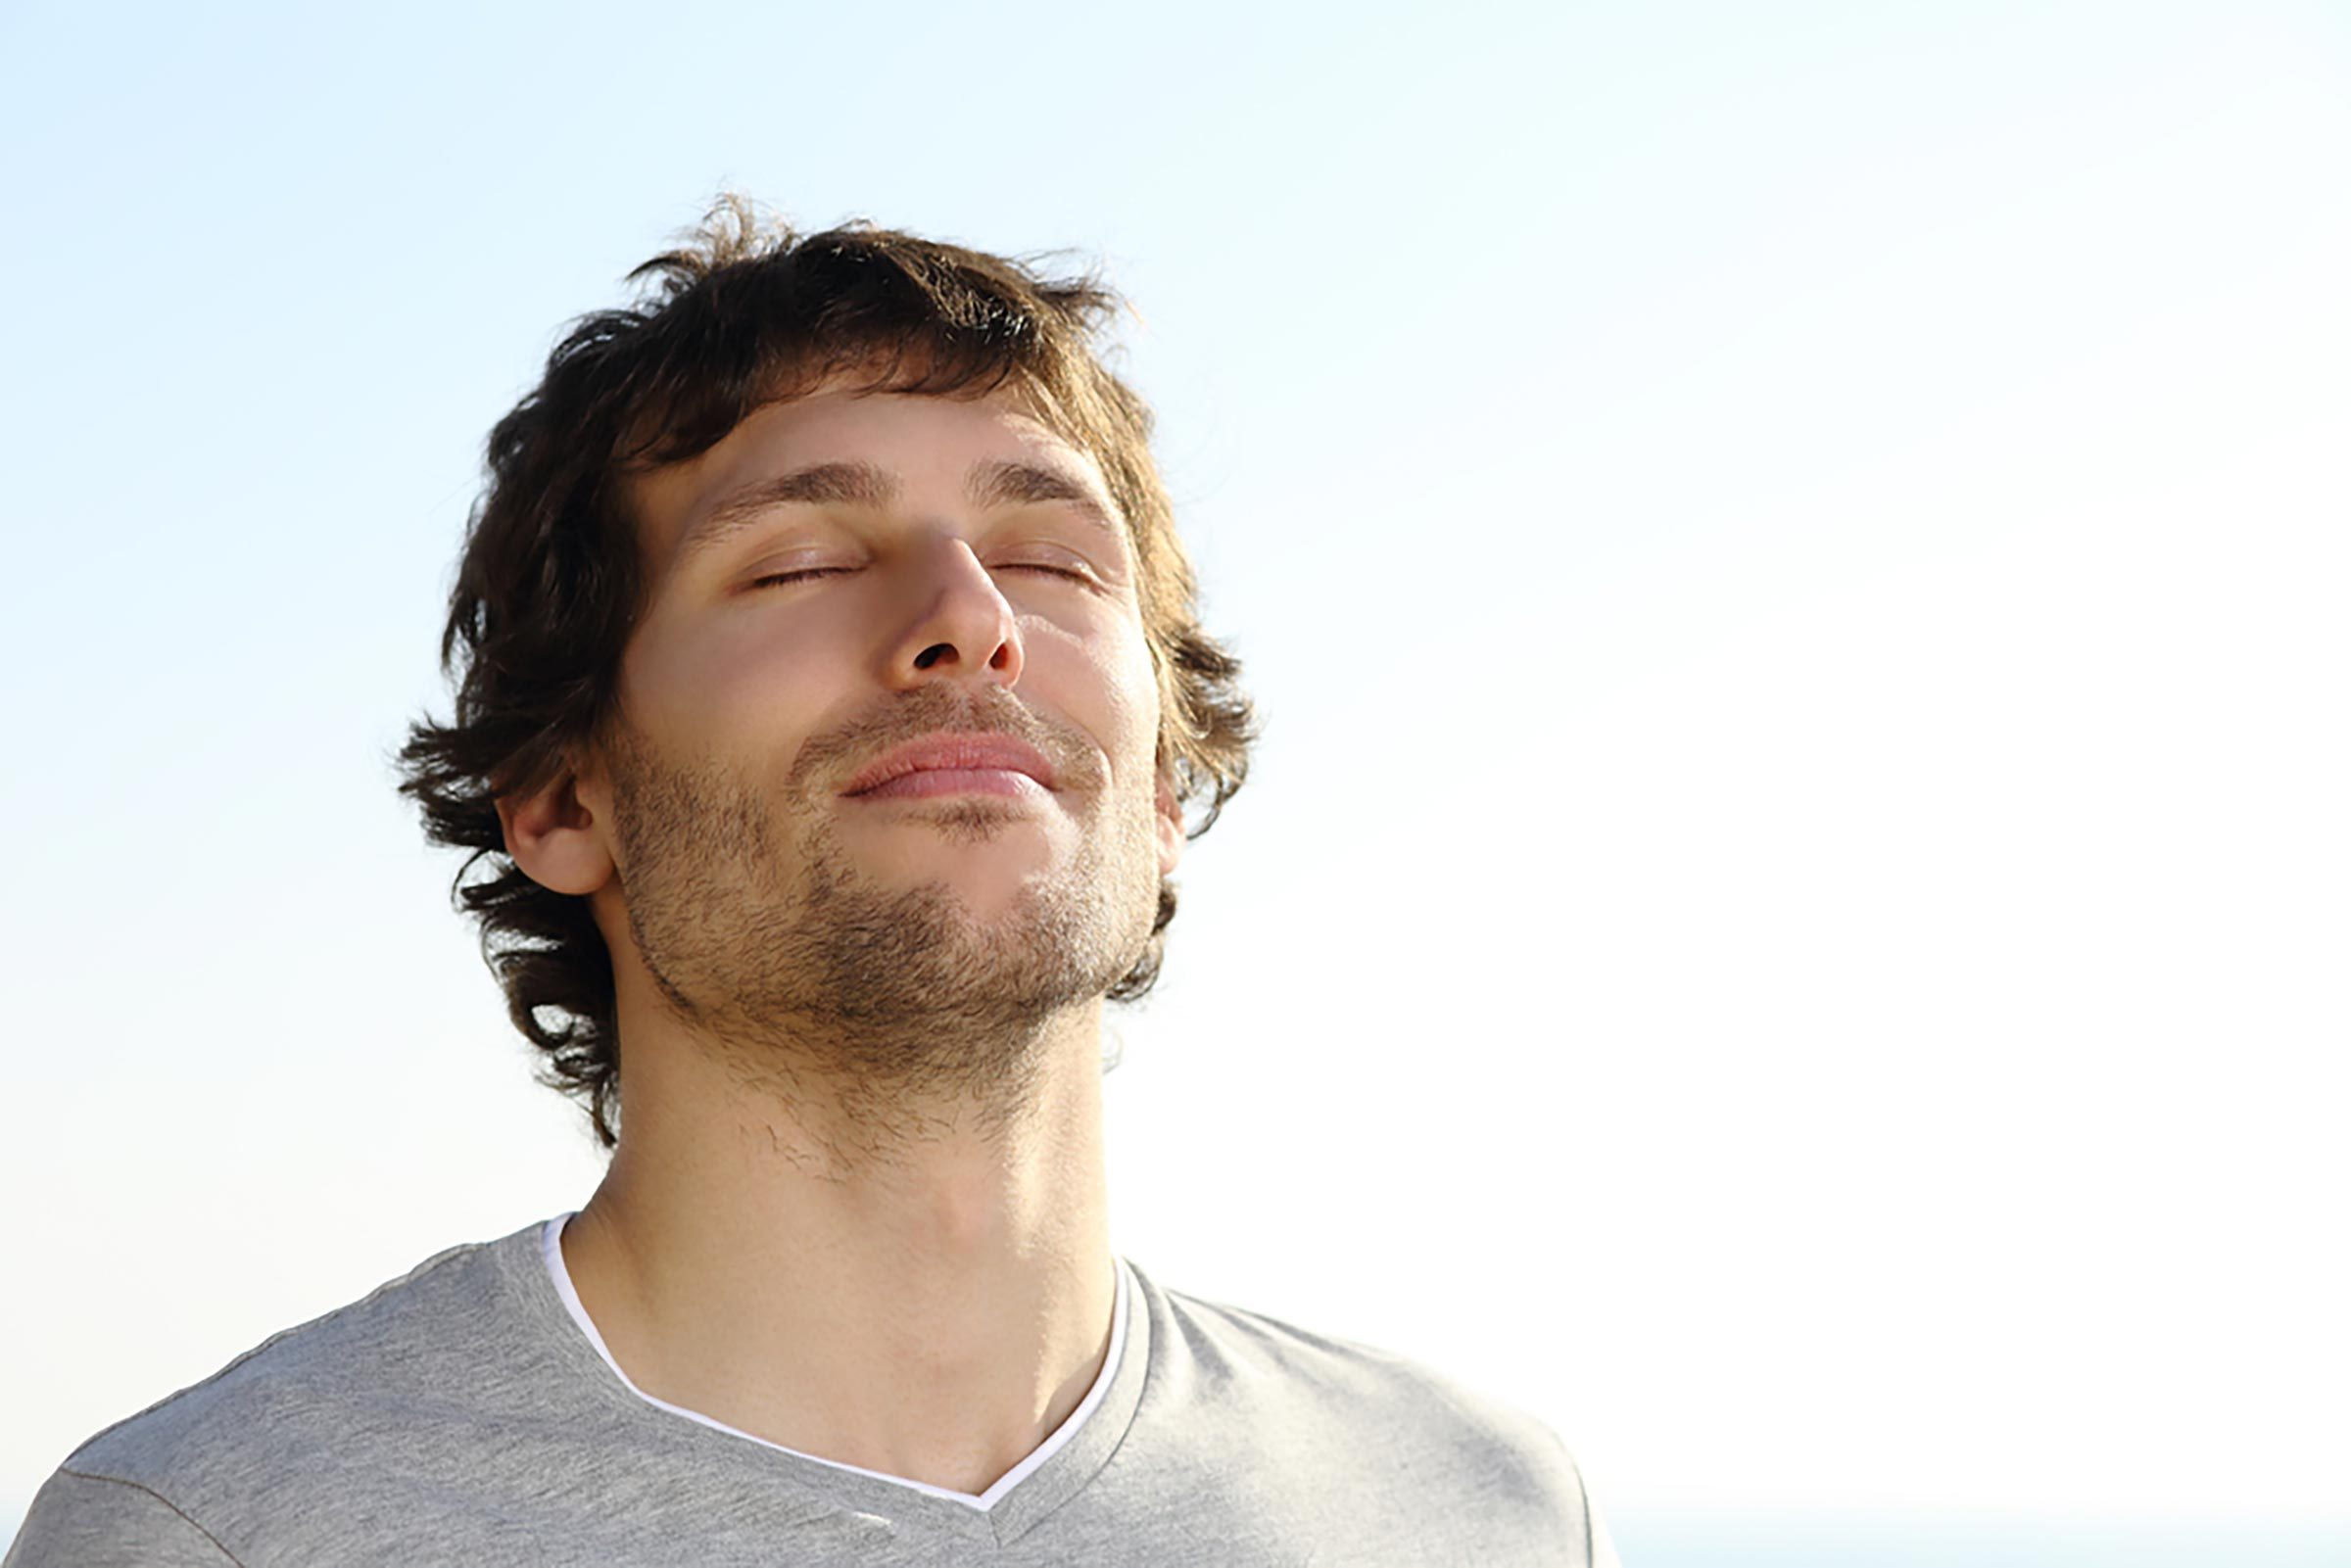 man outdoors in the sun breathing deeply